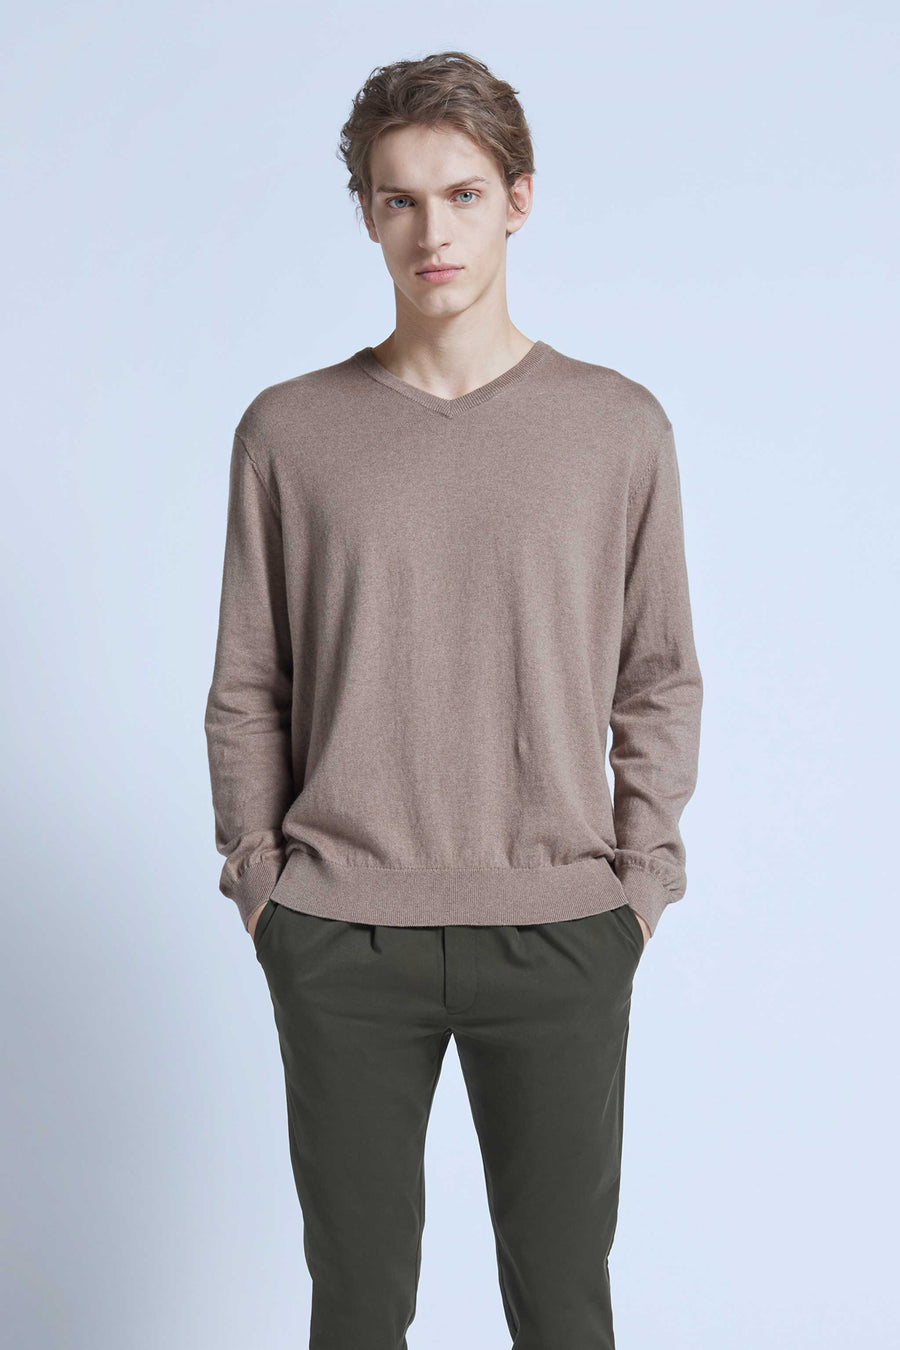 harlan + holden v-neck sweater dash cold rock